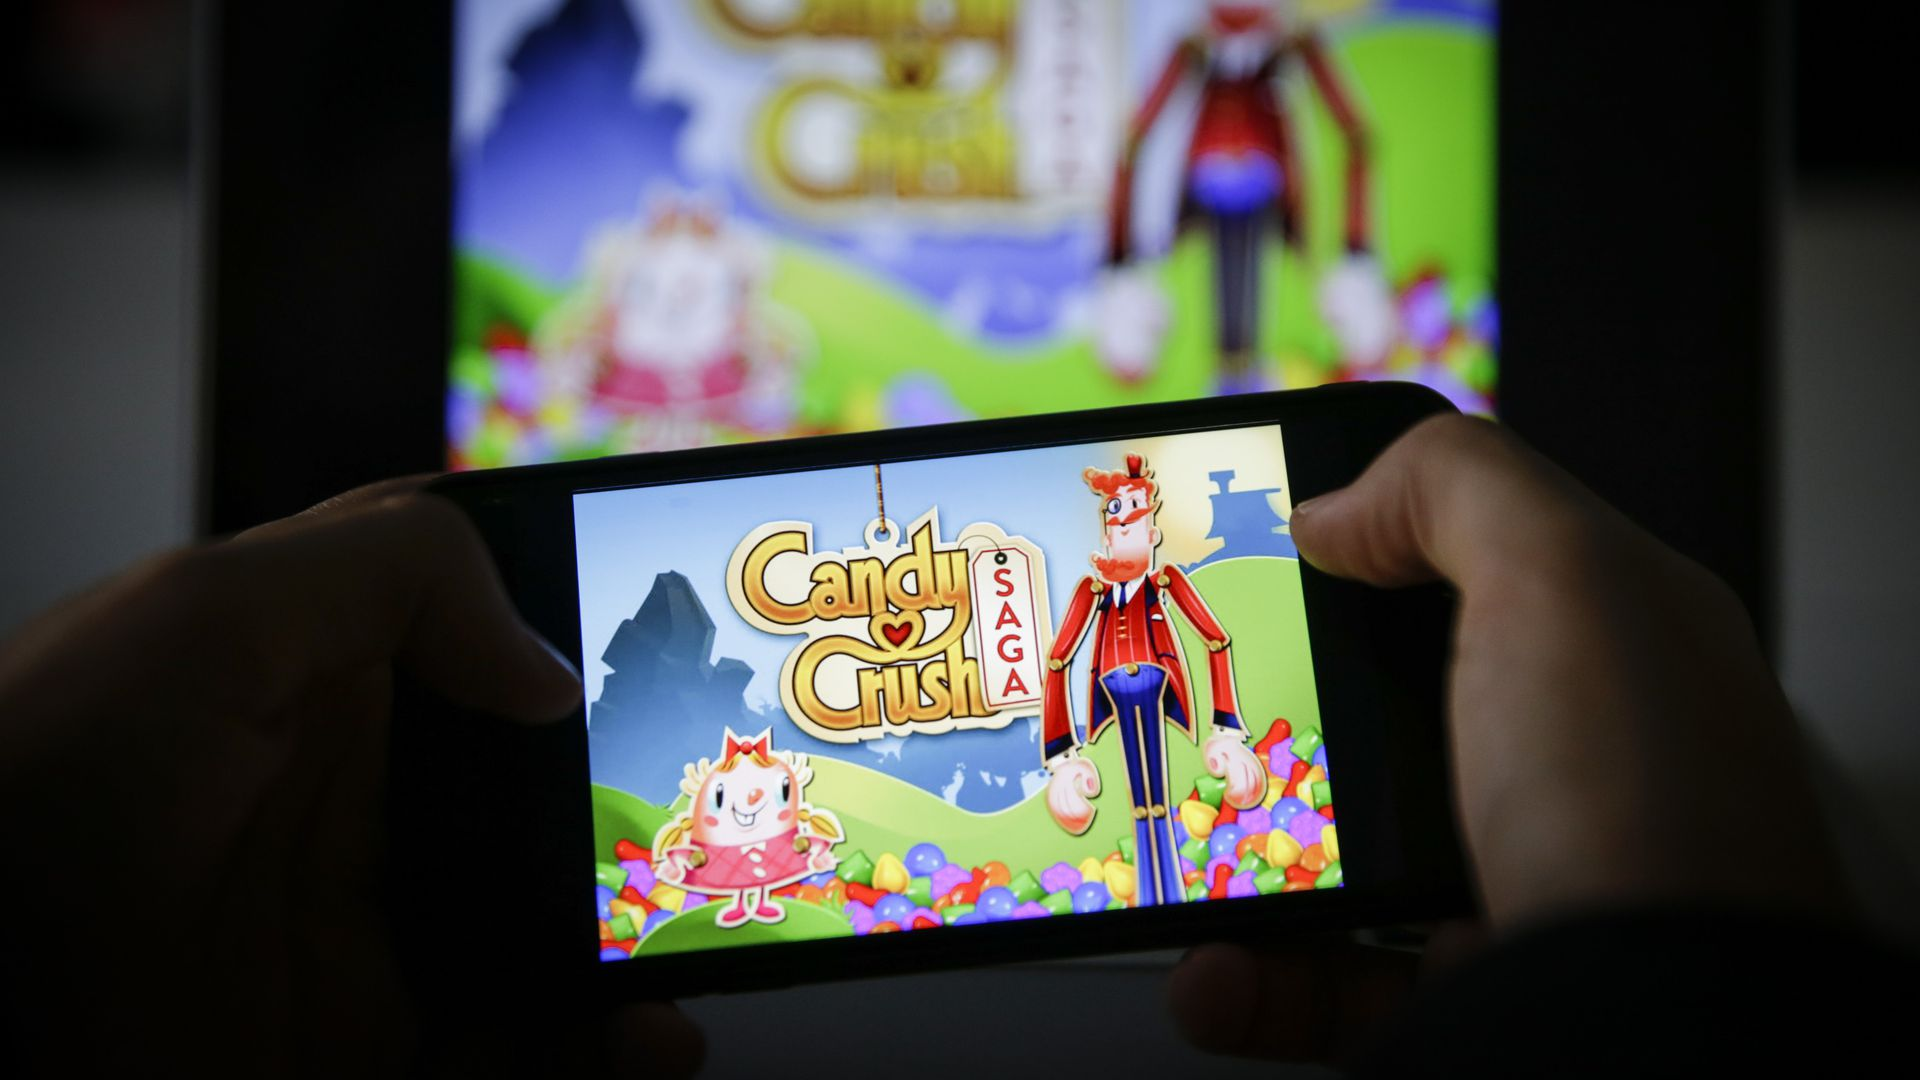 In this image, someone holds a phone that displays the Candy Crush home page in front of a TV screen that also displays Candy Crush.